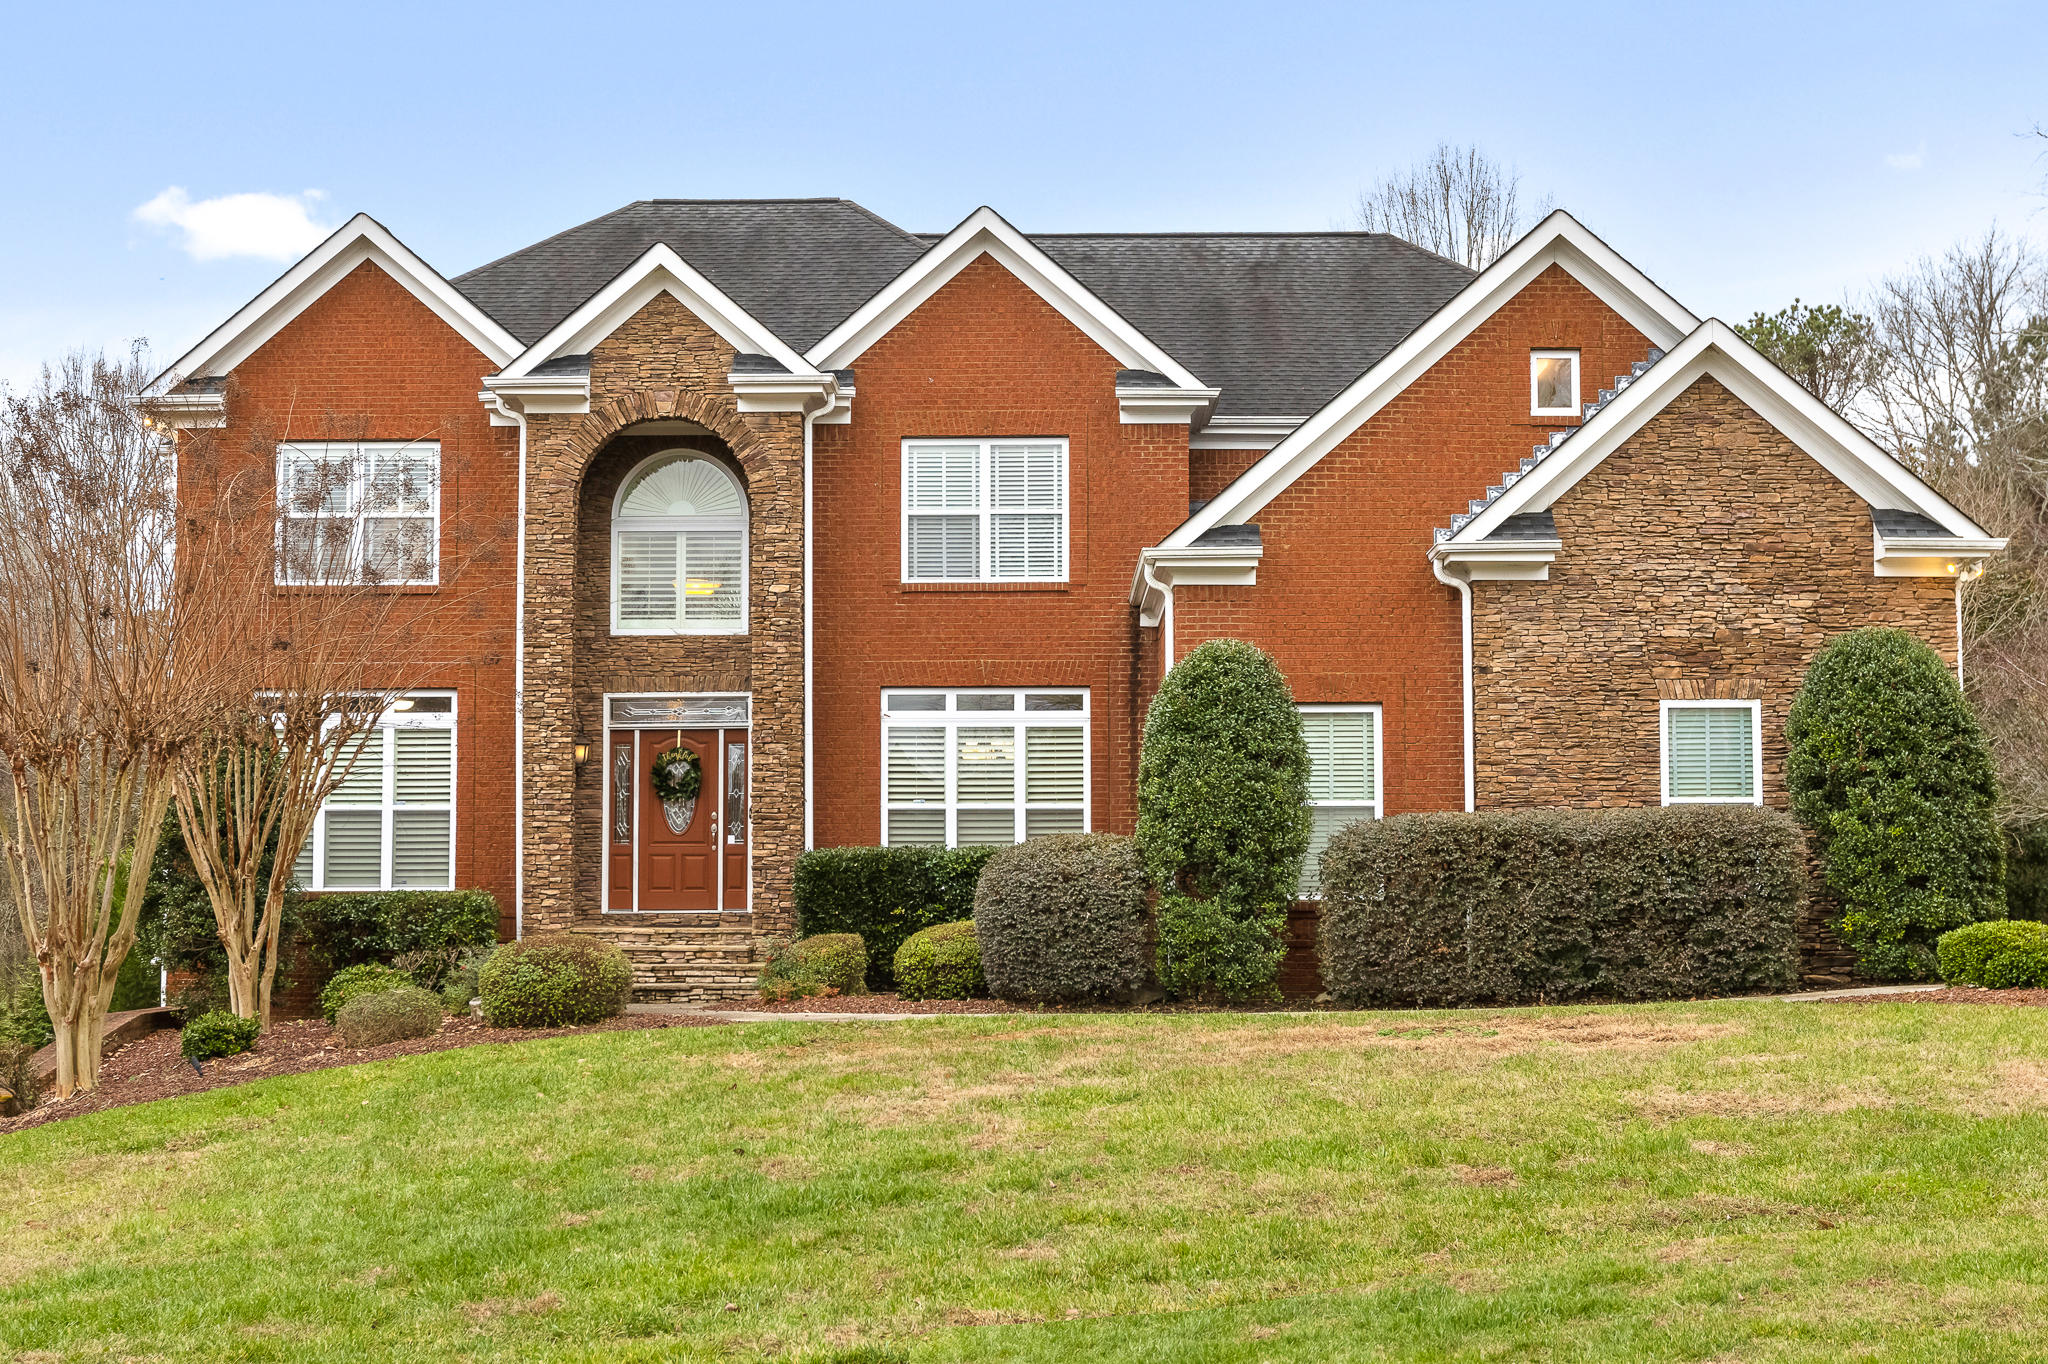 Details for 4085 Platinum, Ooltewah, TN 37363